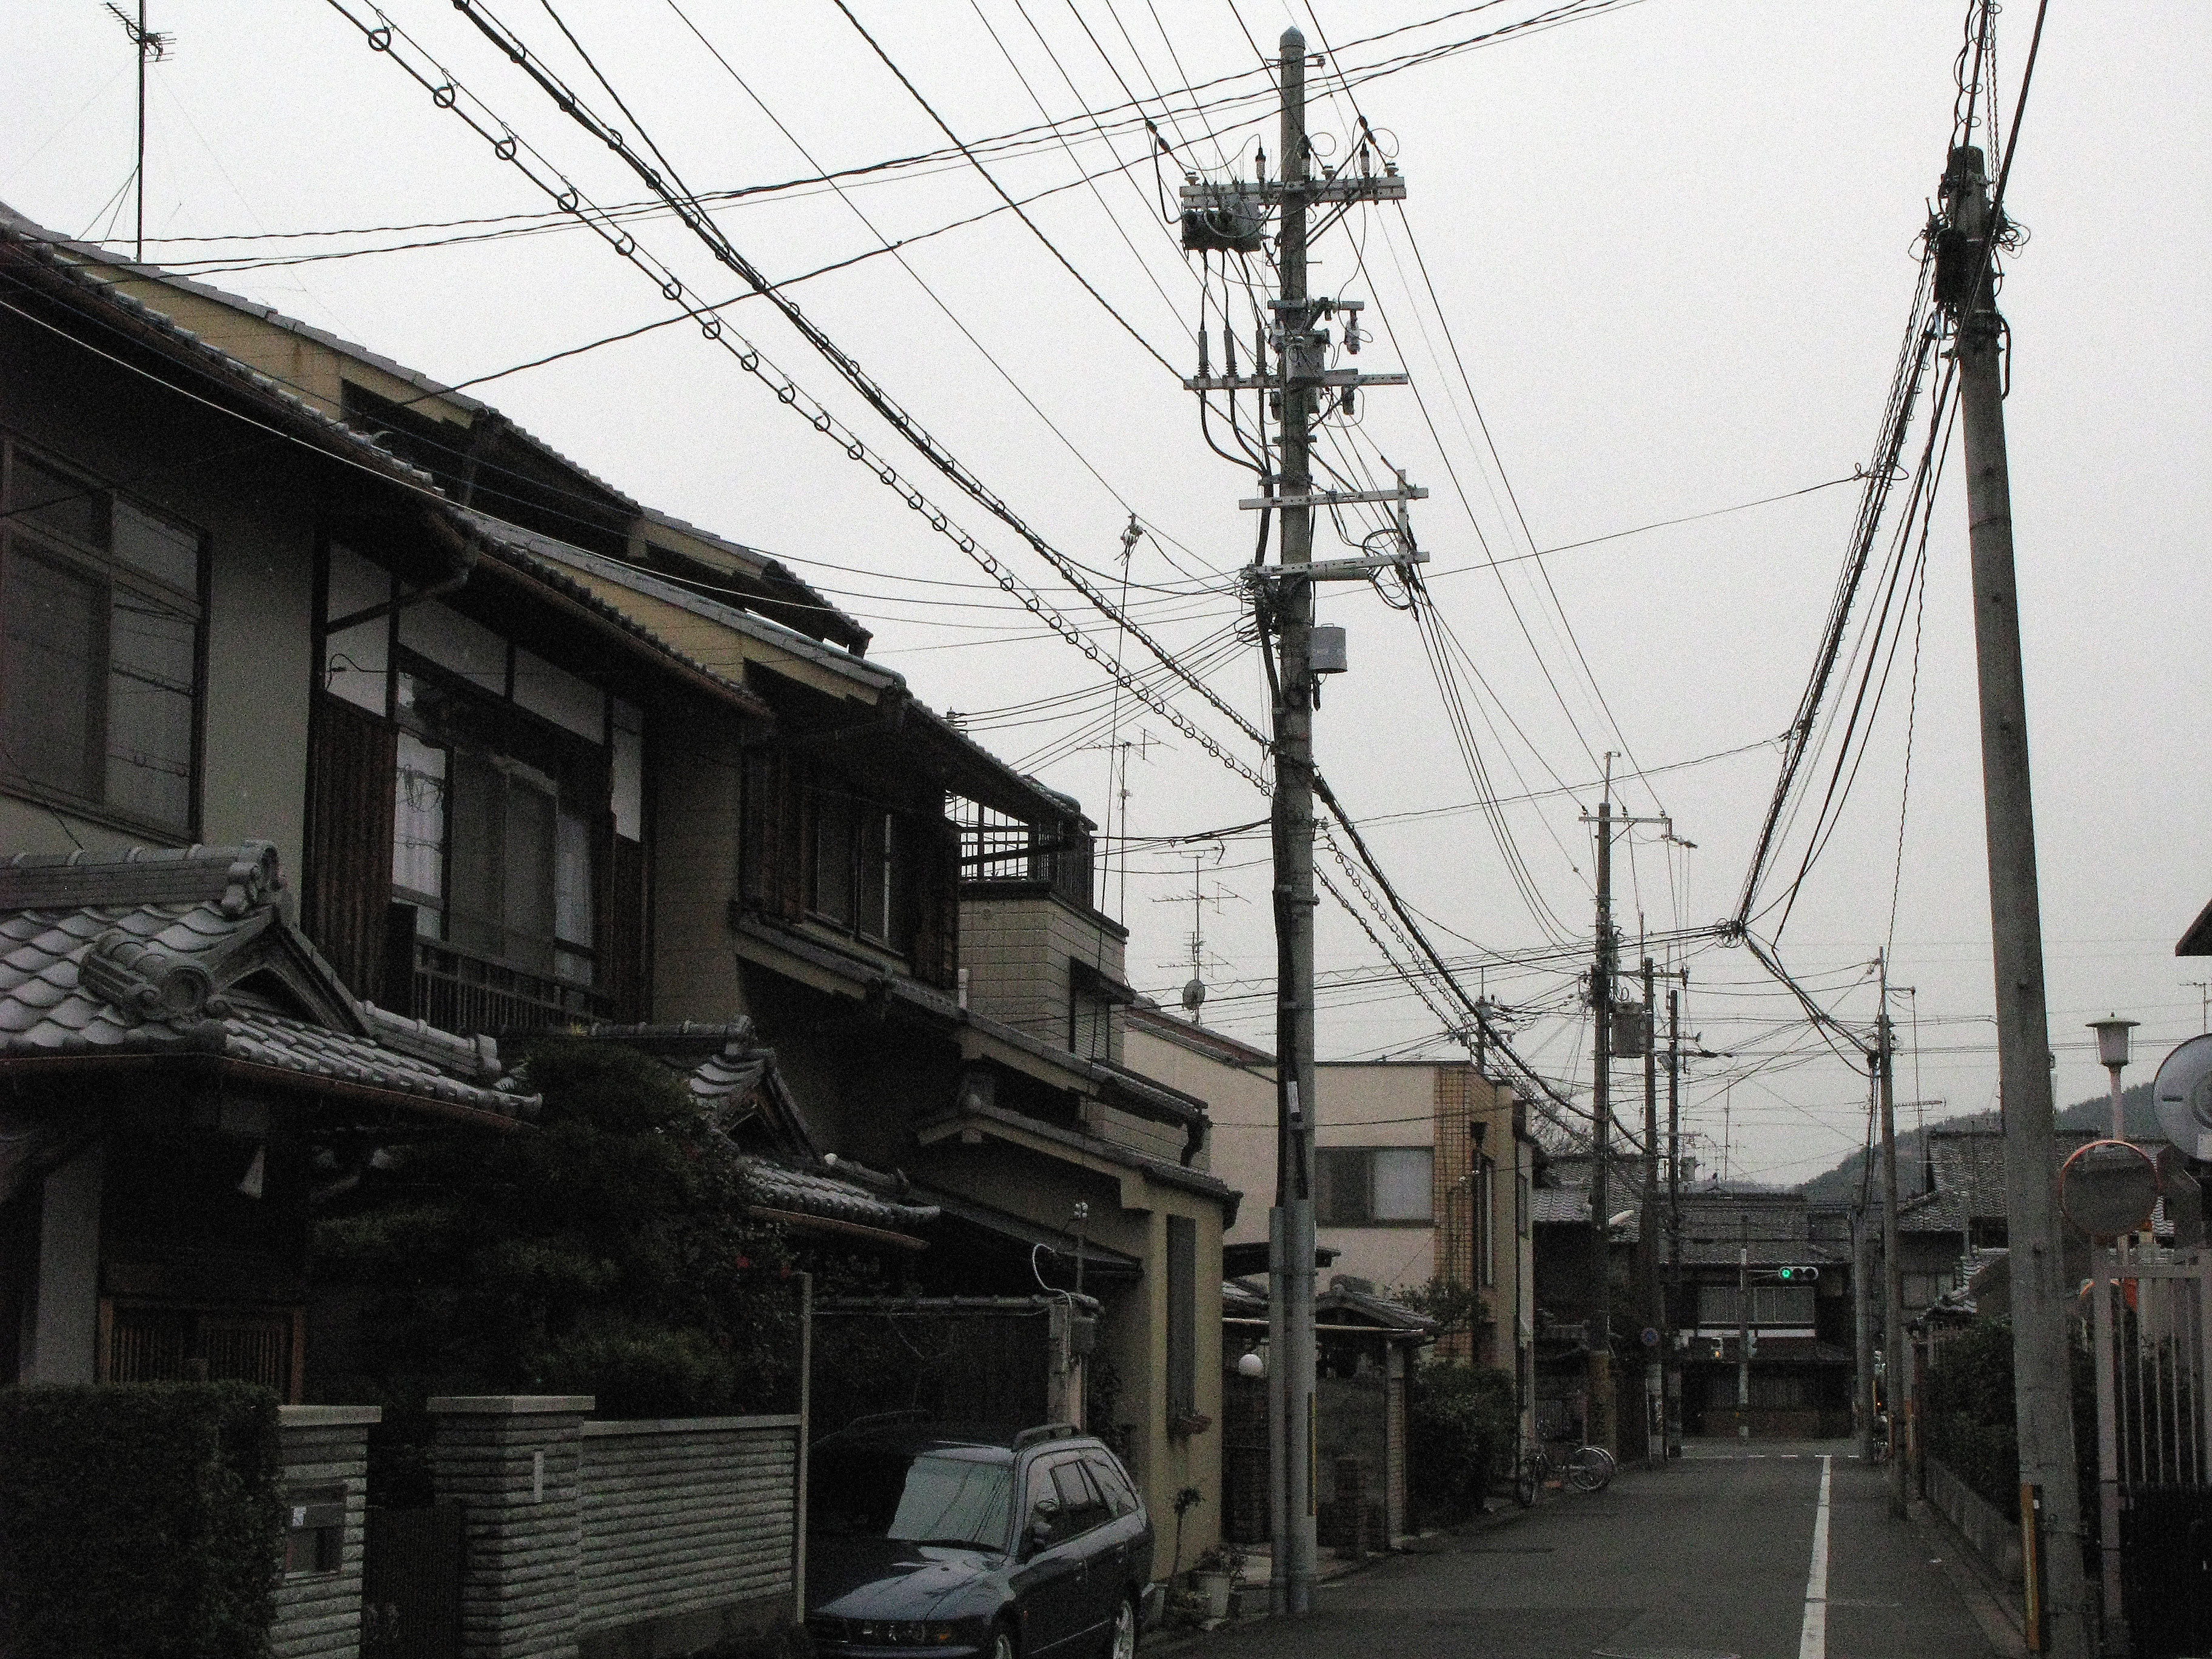 grainy image of power cables strung across a street in japan